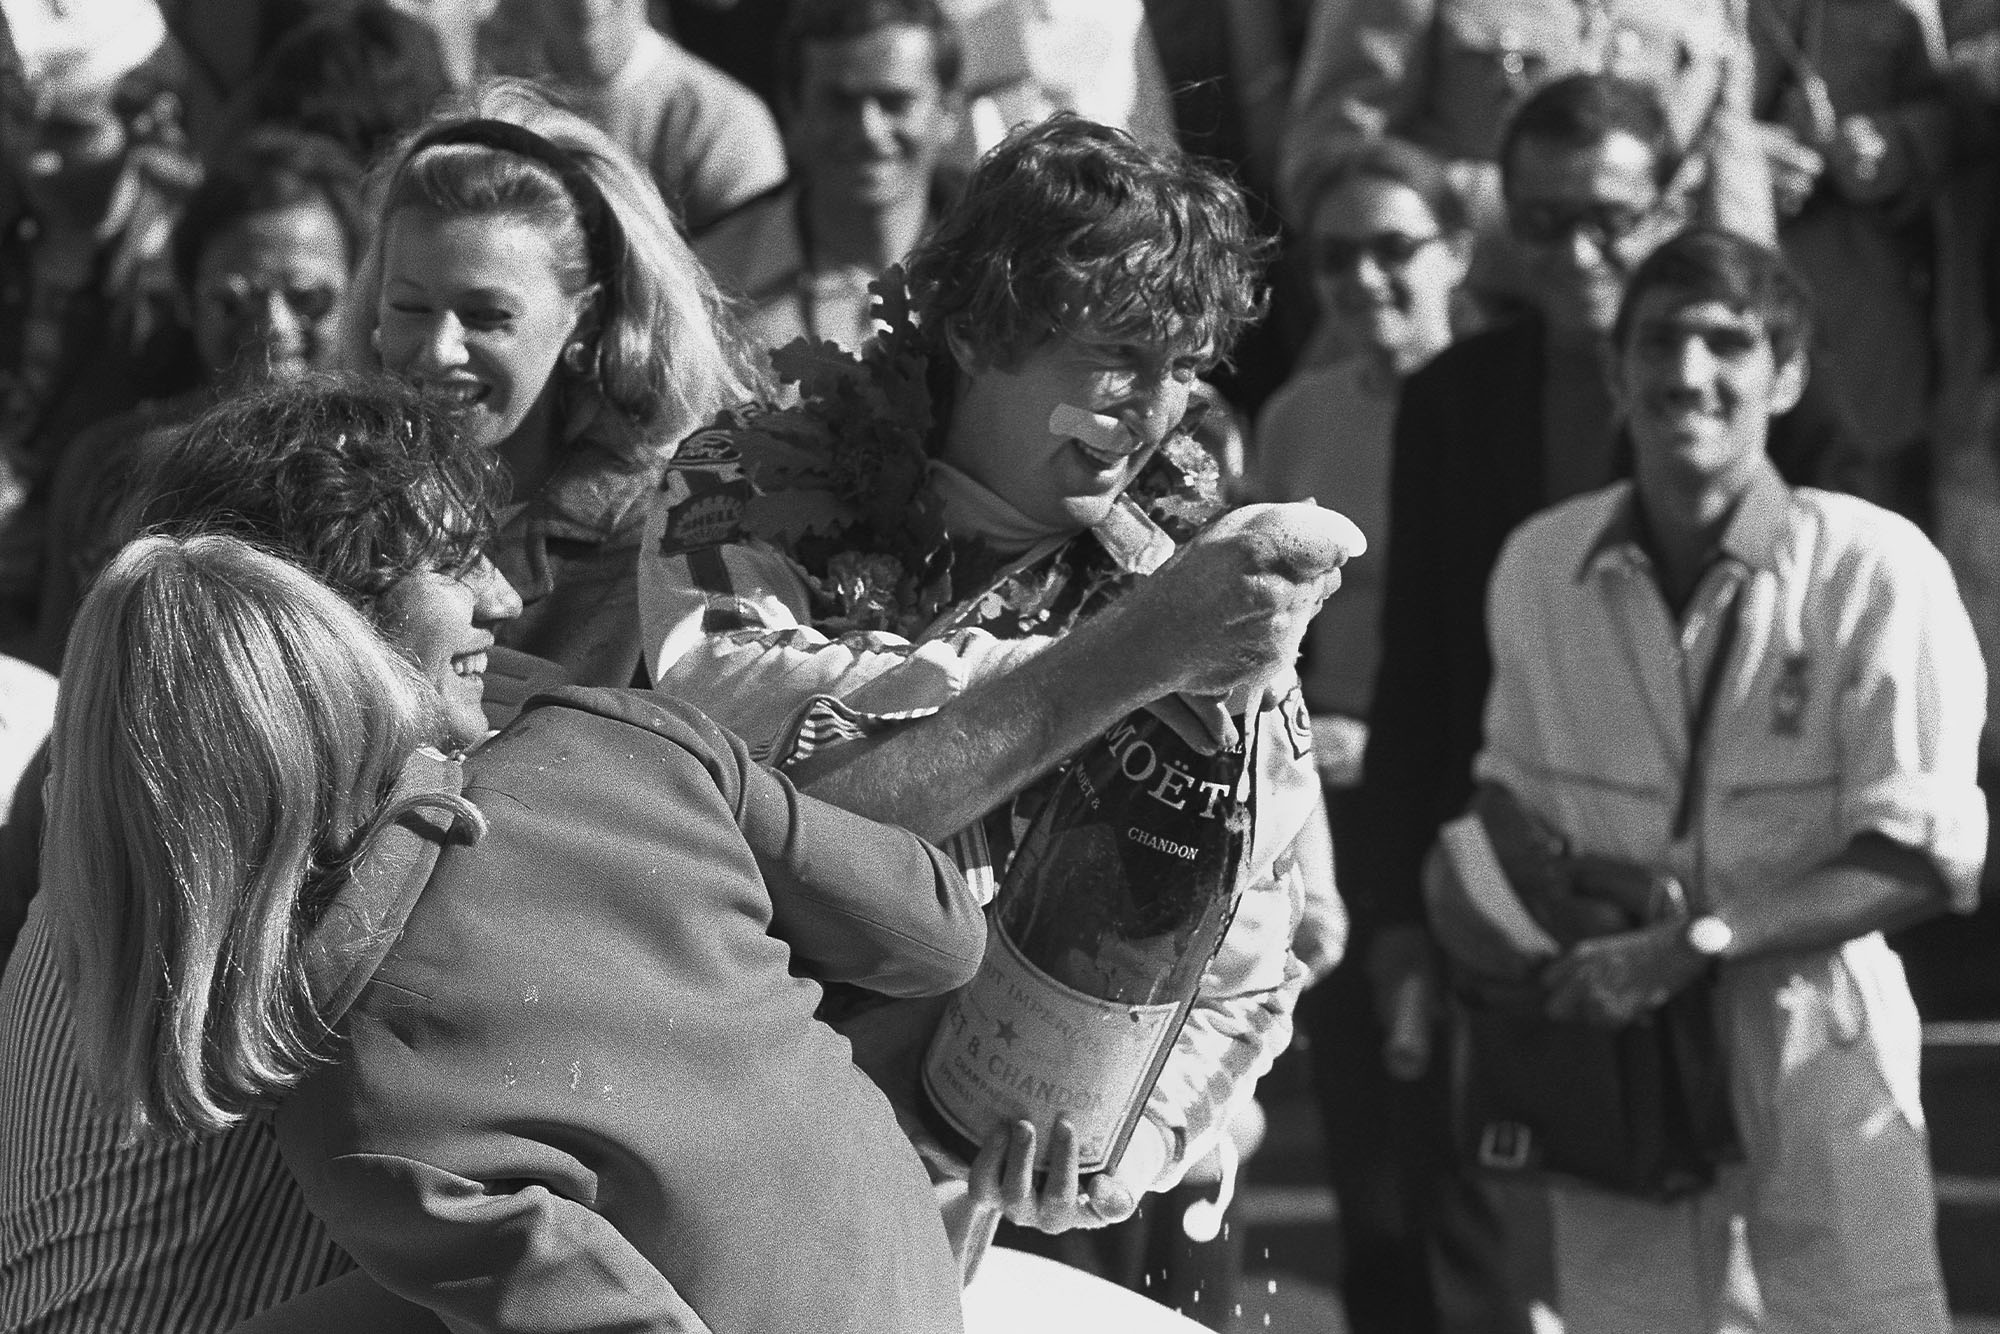 Jochen Rindt celebrates winning the 1970 French Grand Prix.